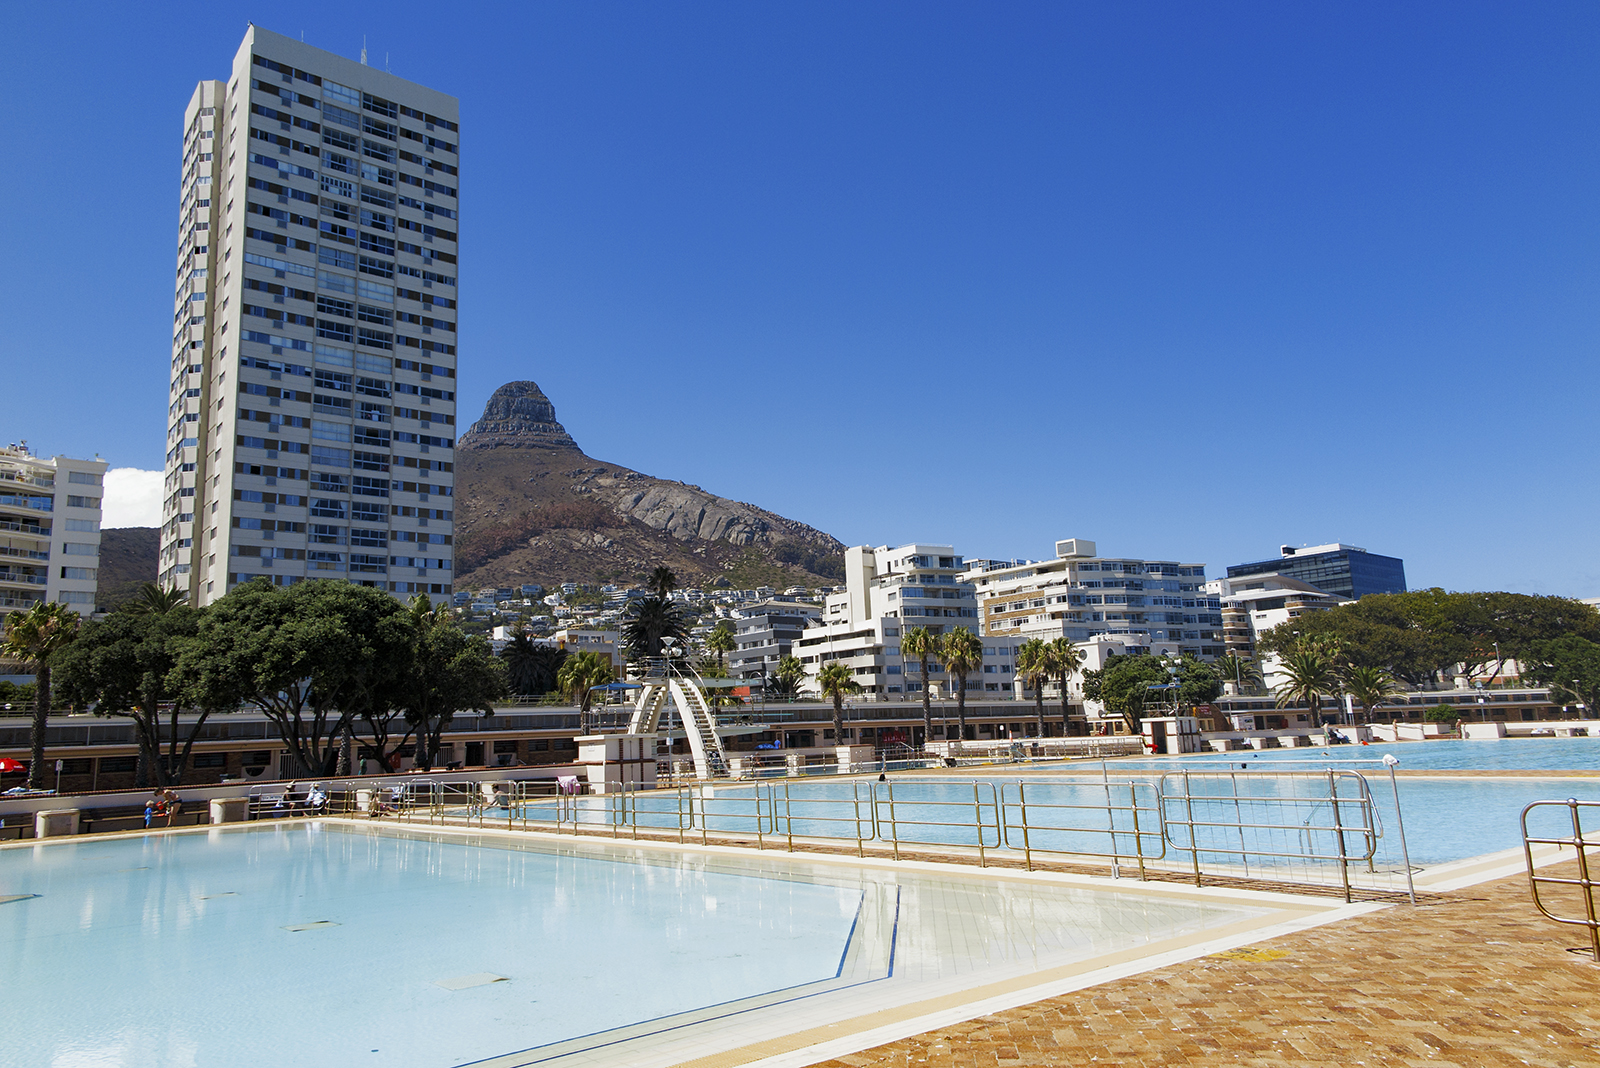 zwembad, seapoint